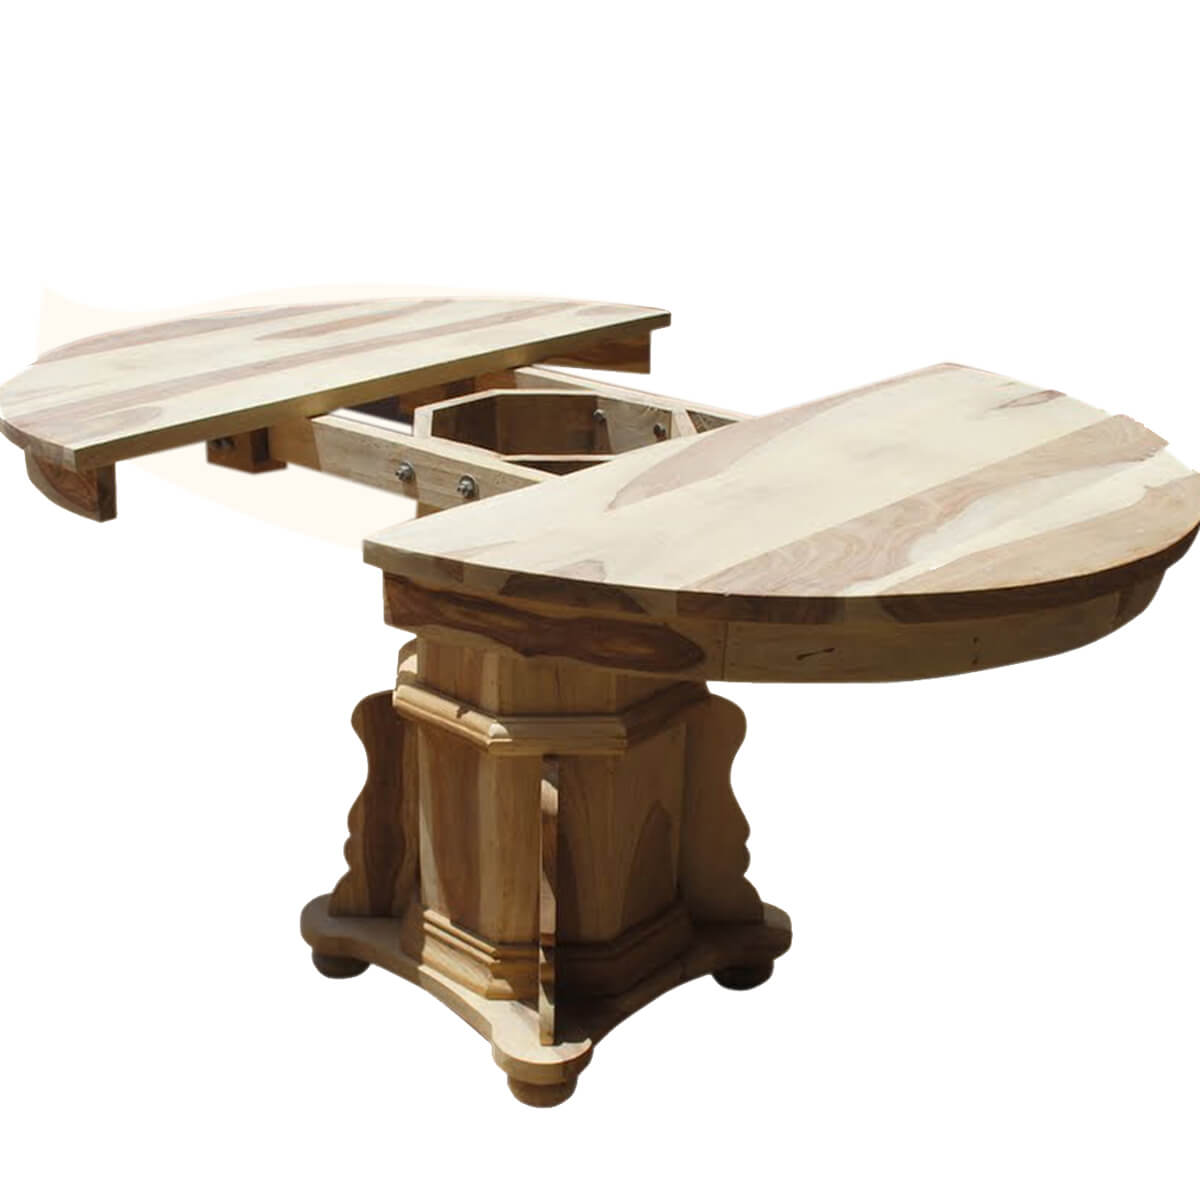 Dallas ranch solid wood pedestal round dining table w for Pedestal table